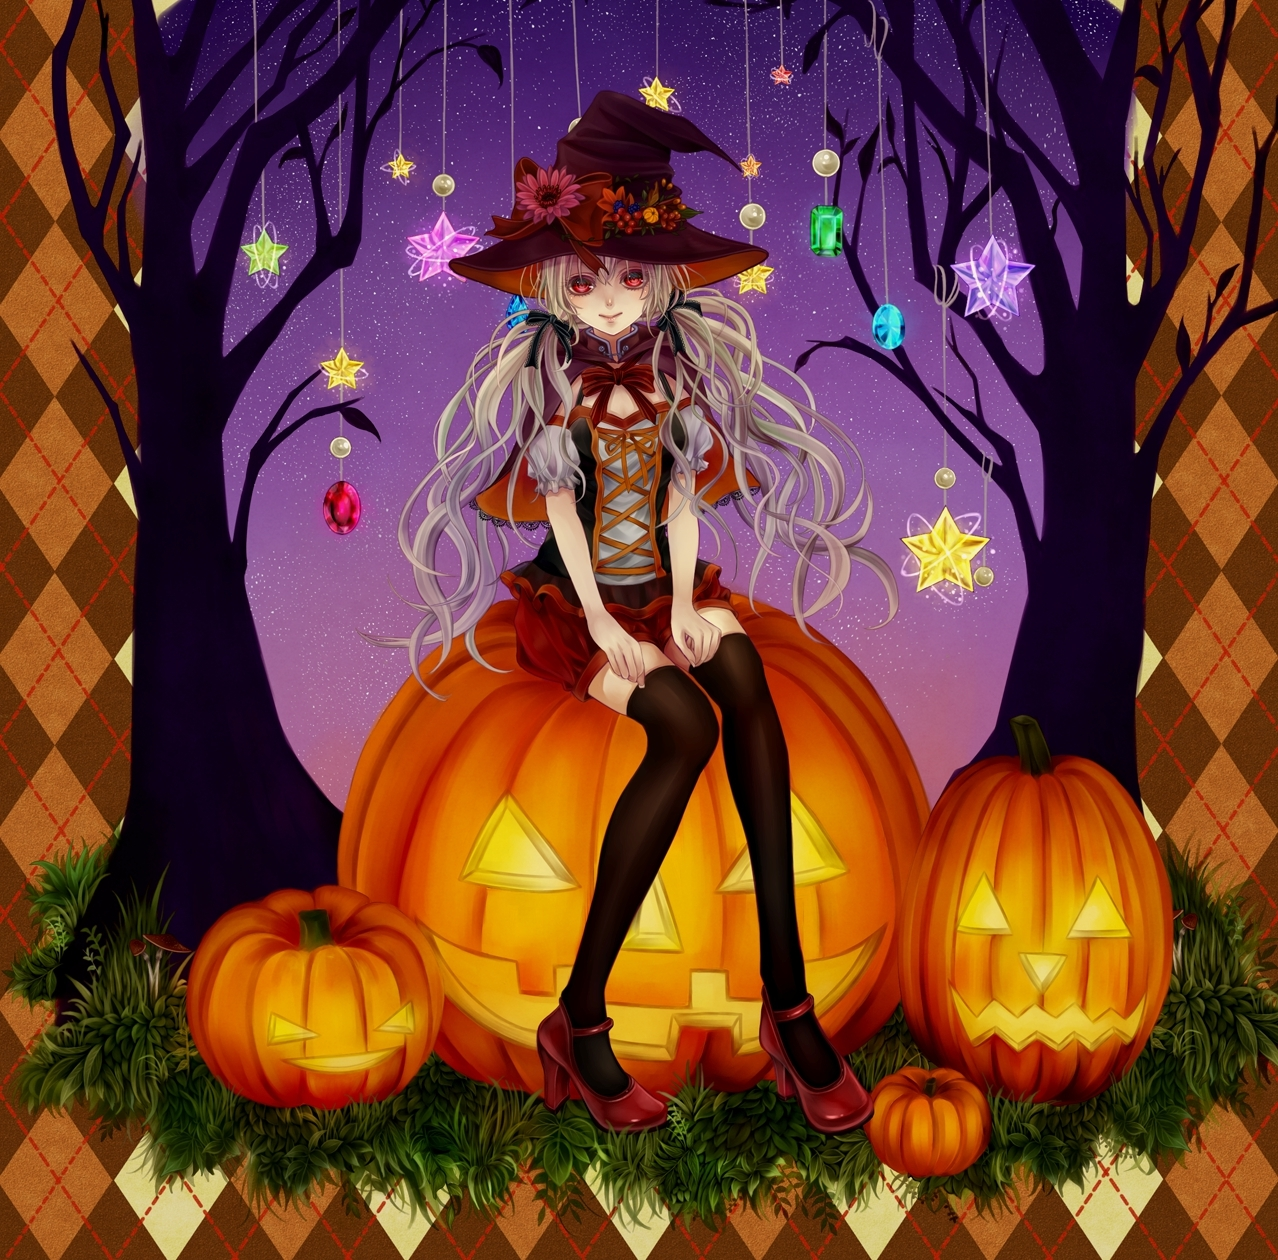 Cute Anime Witch Pictures, Photos, and Images for Facebook, Tumblr ...